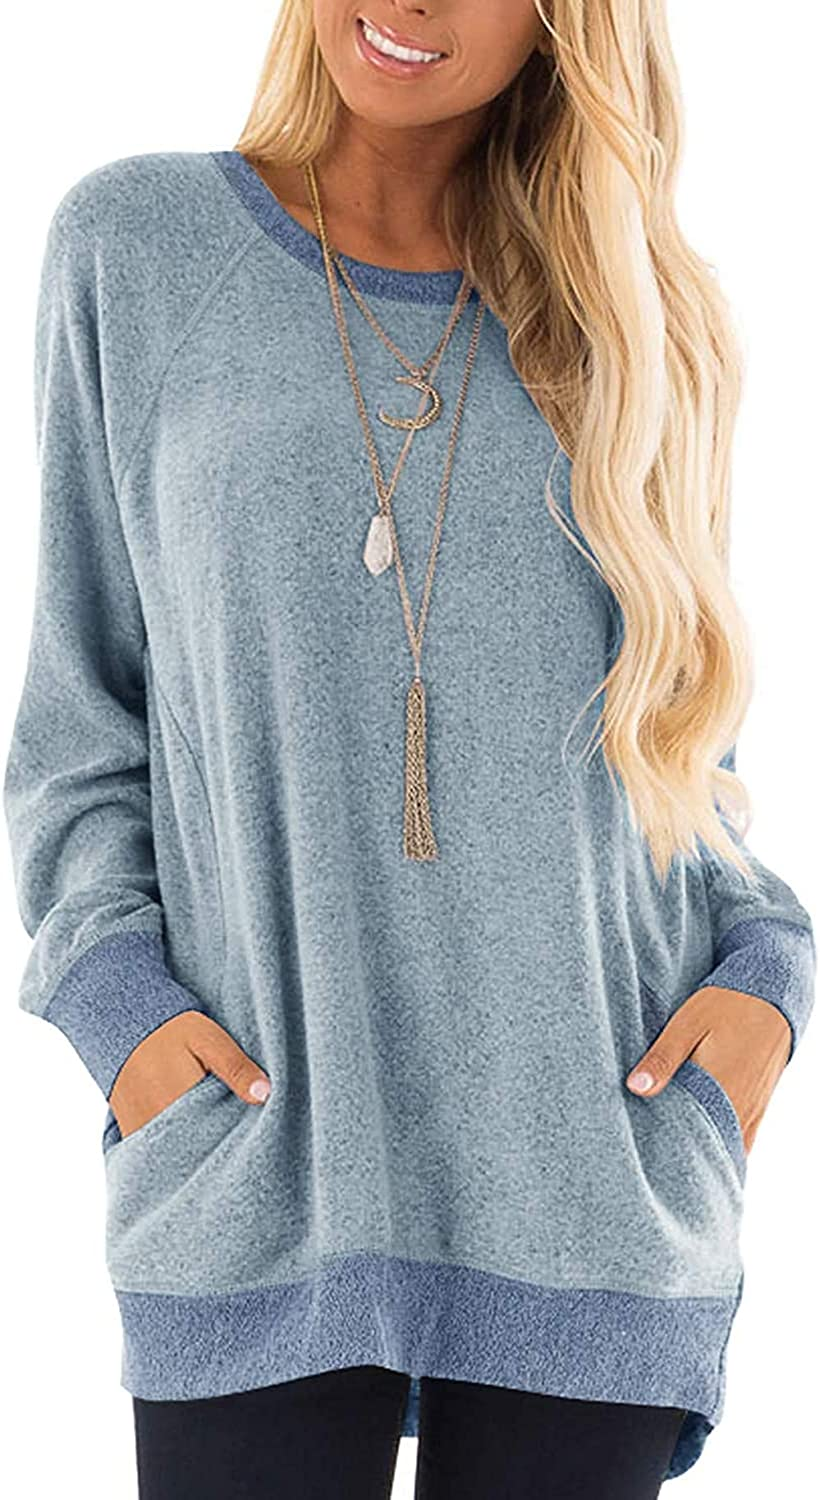 Womens Casual Color Block Long Sleeve Round Neck Pocket T Shirts Blouses Sweatshirts Plus Size Tunic Tops (S-5XL)